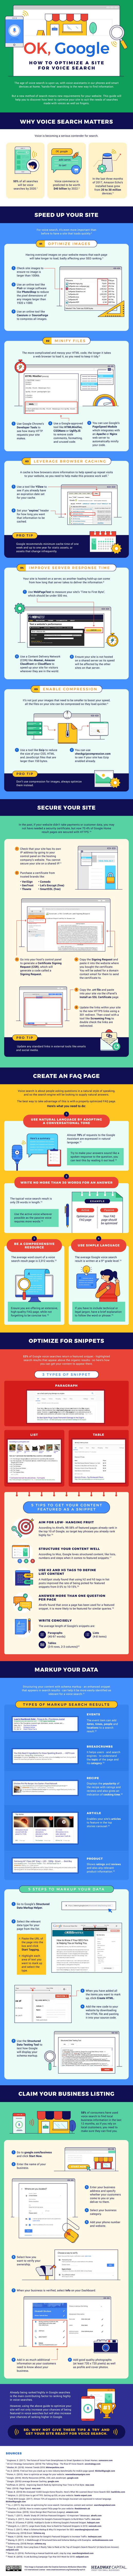 Google: How Do I Optimize a Site for Voice Search?